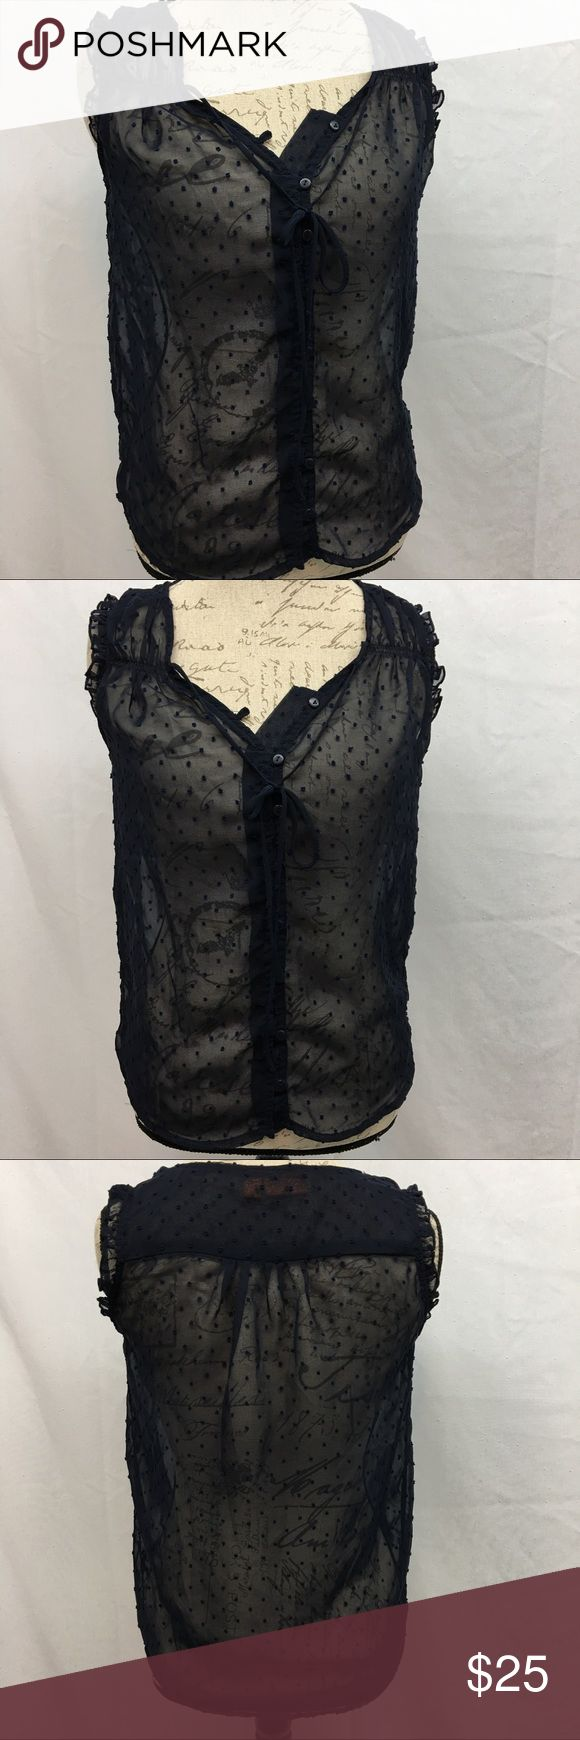 "Urban Behavior Rebel Sheer Top Urban Behavior Rebel Sheer top. Excellent condition with no flaws. Dark blue with polka dots. Size S/P. Armpit to armpit 19"". Shoulder to bottom hem 25"". Urban Behavior Tops"